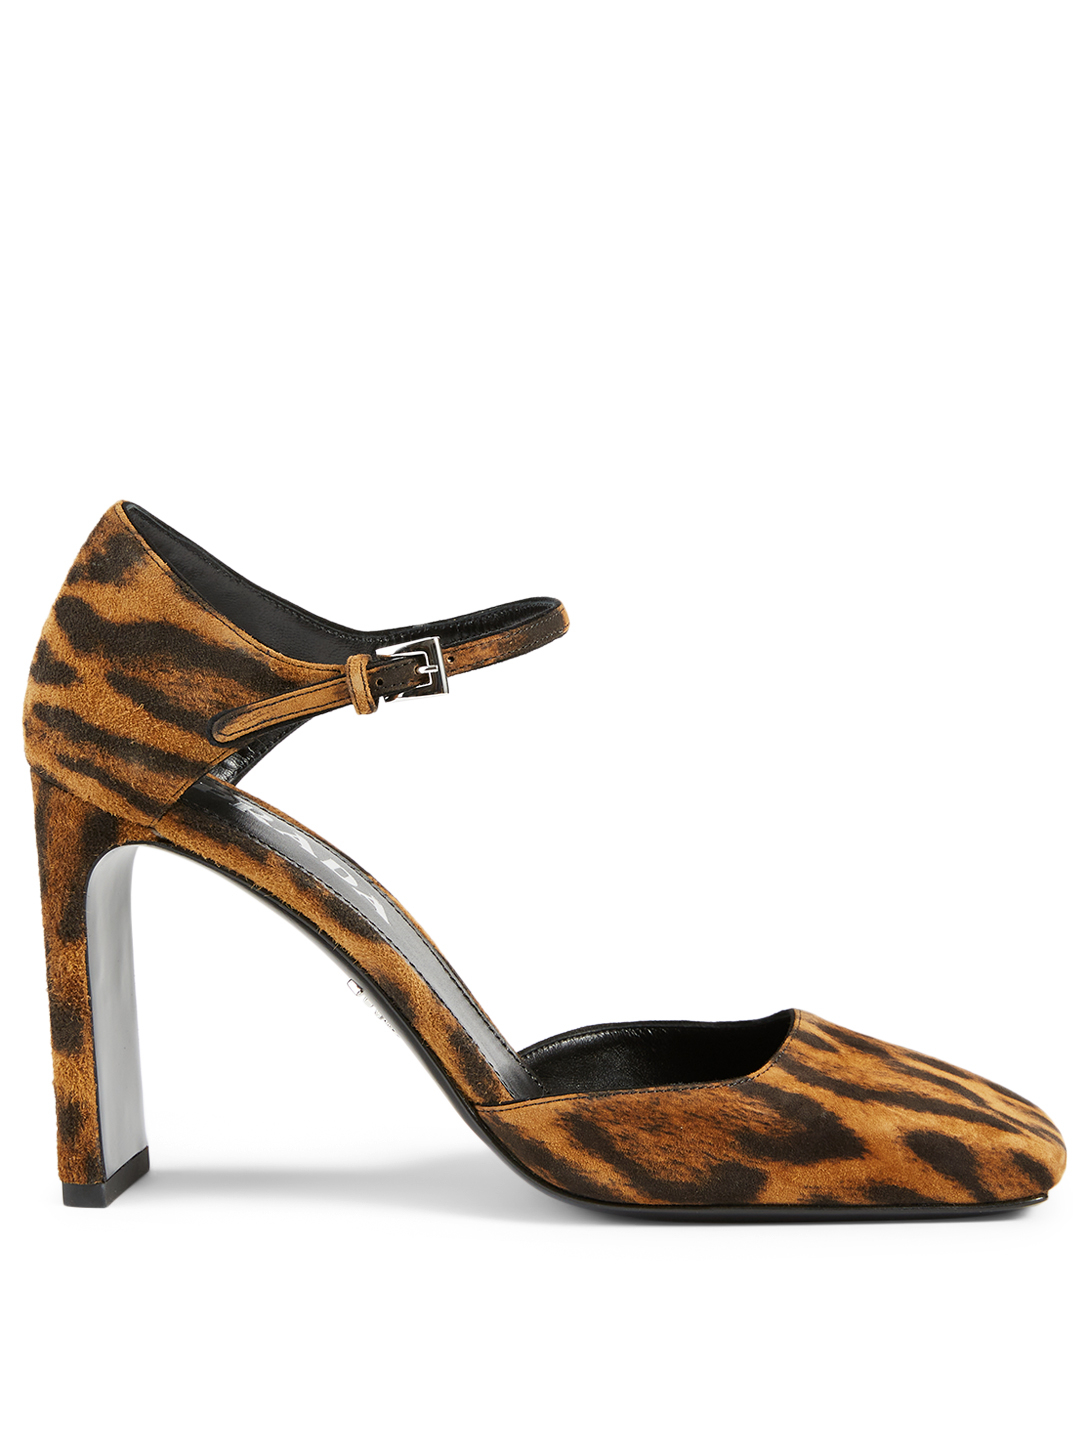 PRADA Suede Leather Mary Jane Pumps In Leopard Print Women's Brown